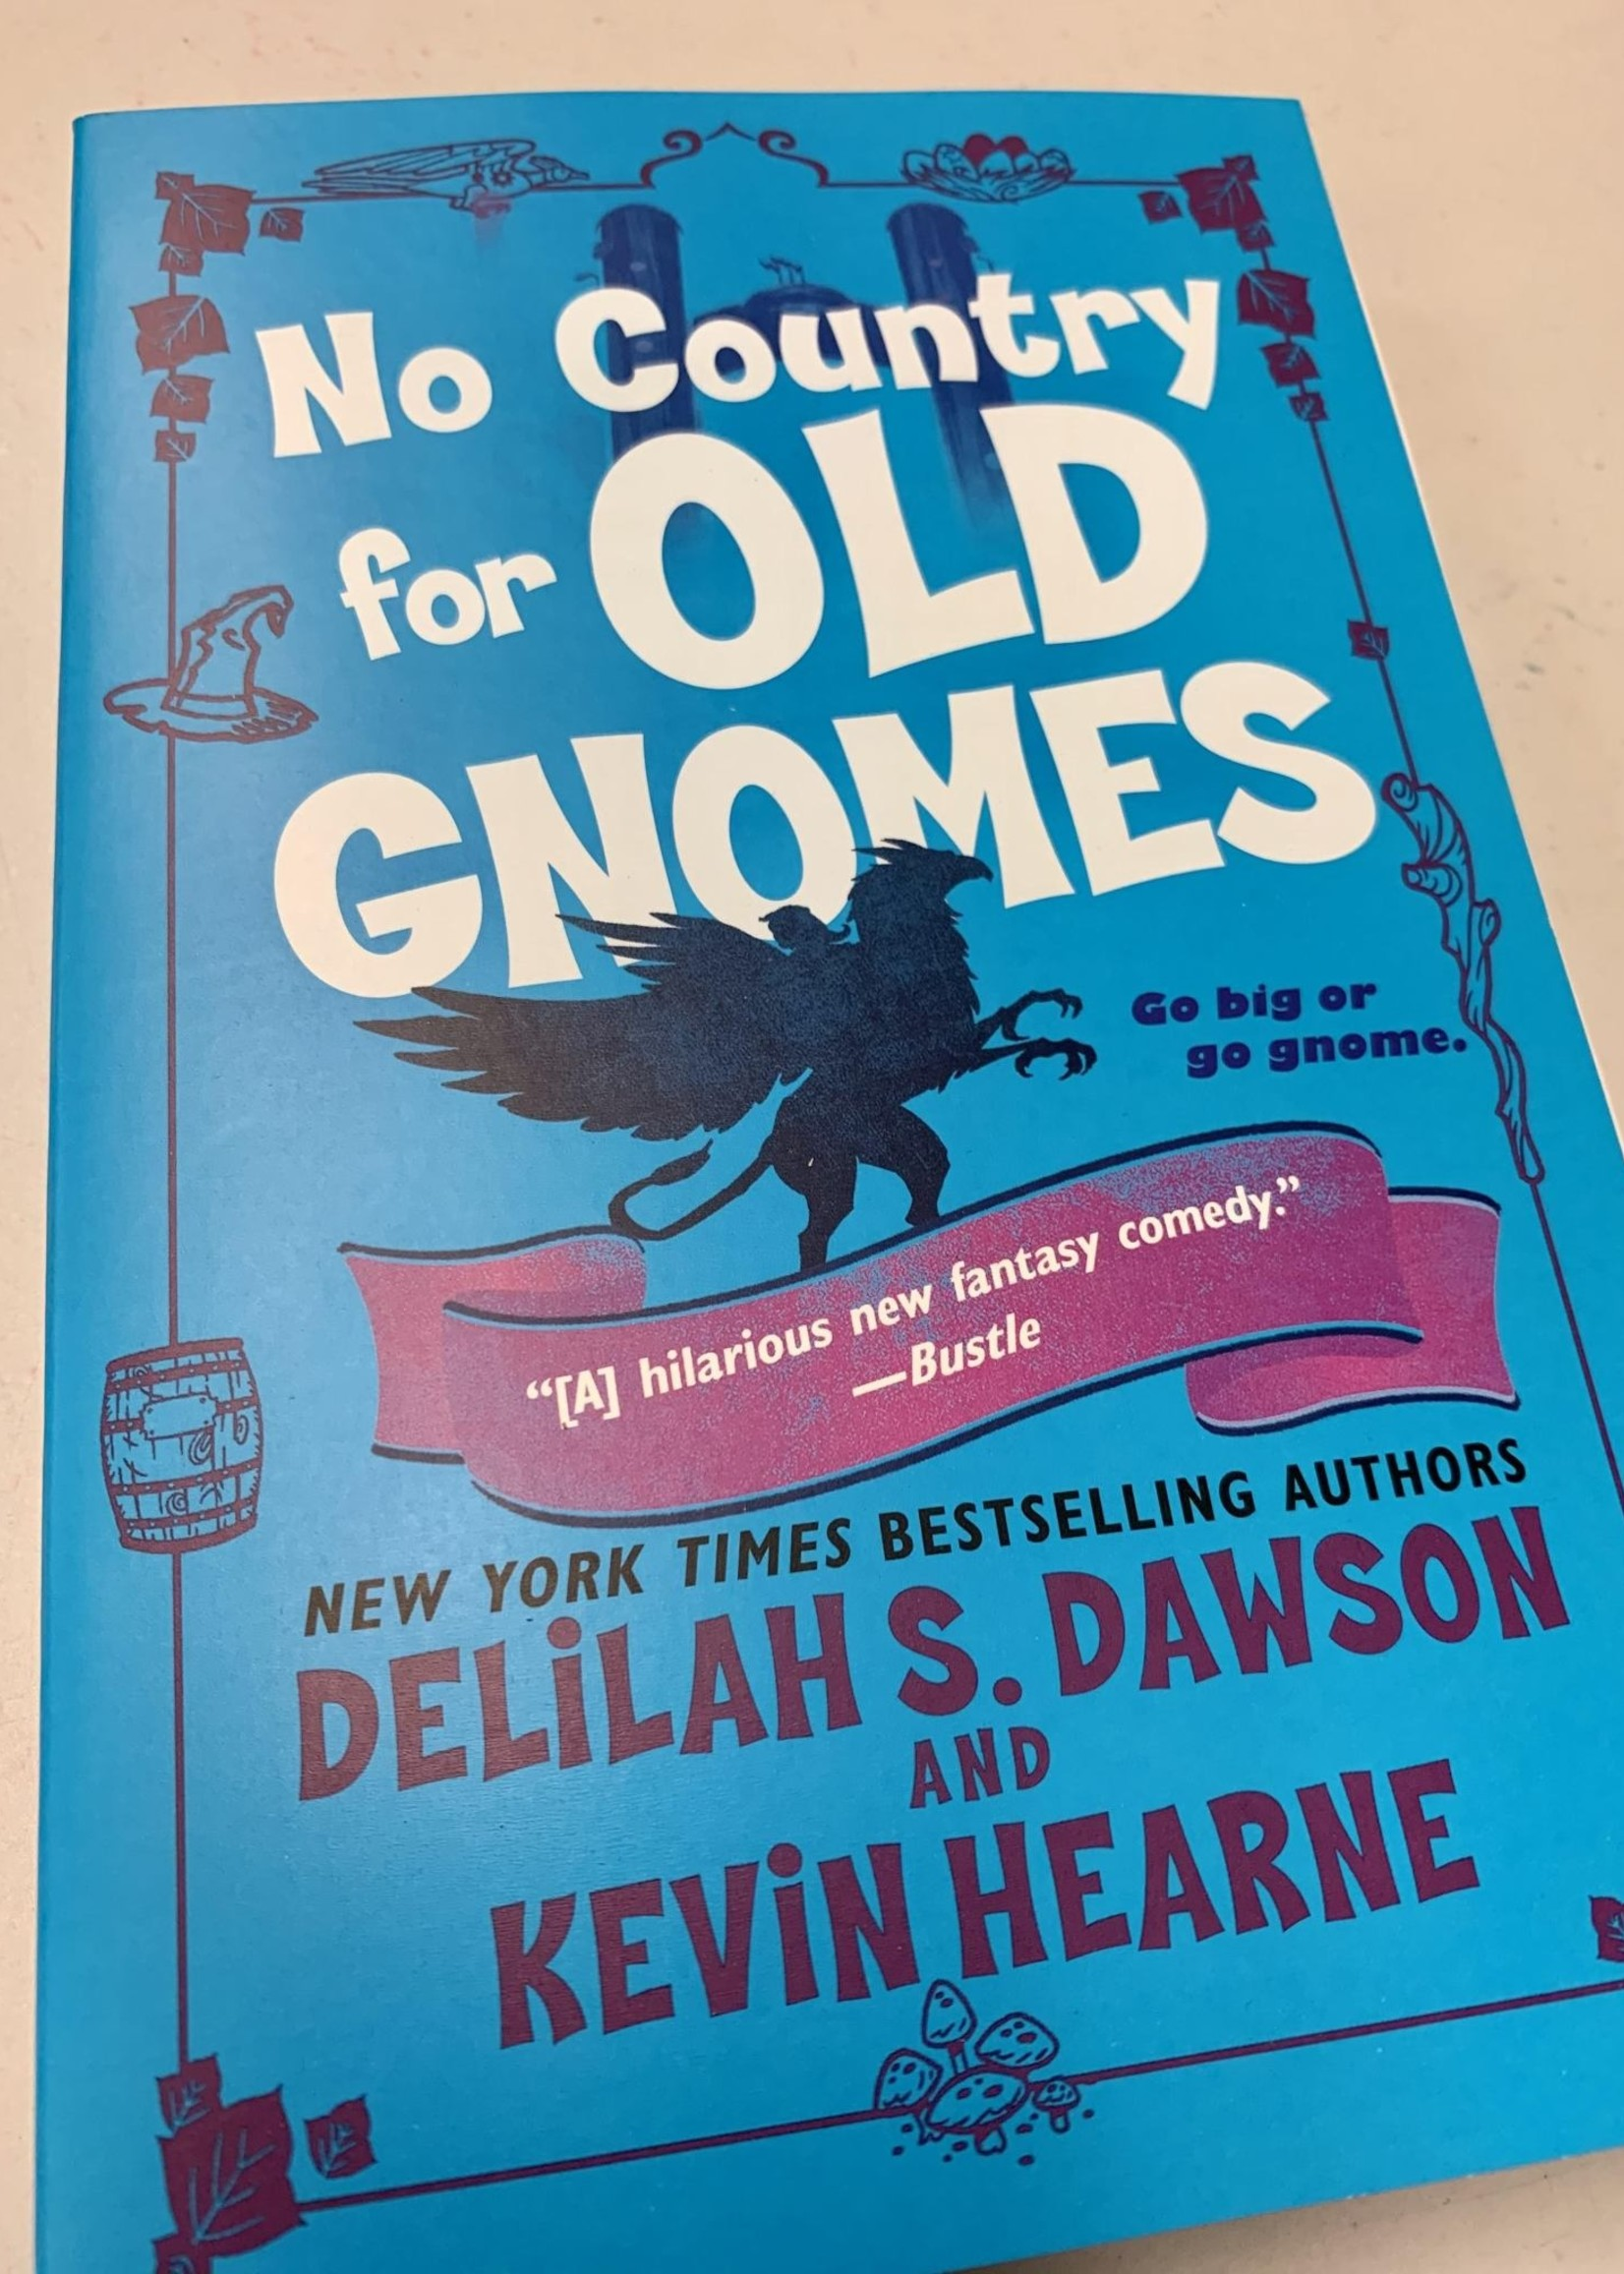 No Country for Old Gnomes THE TALES OF PELL - By KEVIN HEARNE and DELILAH S. DAWSON